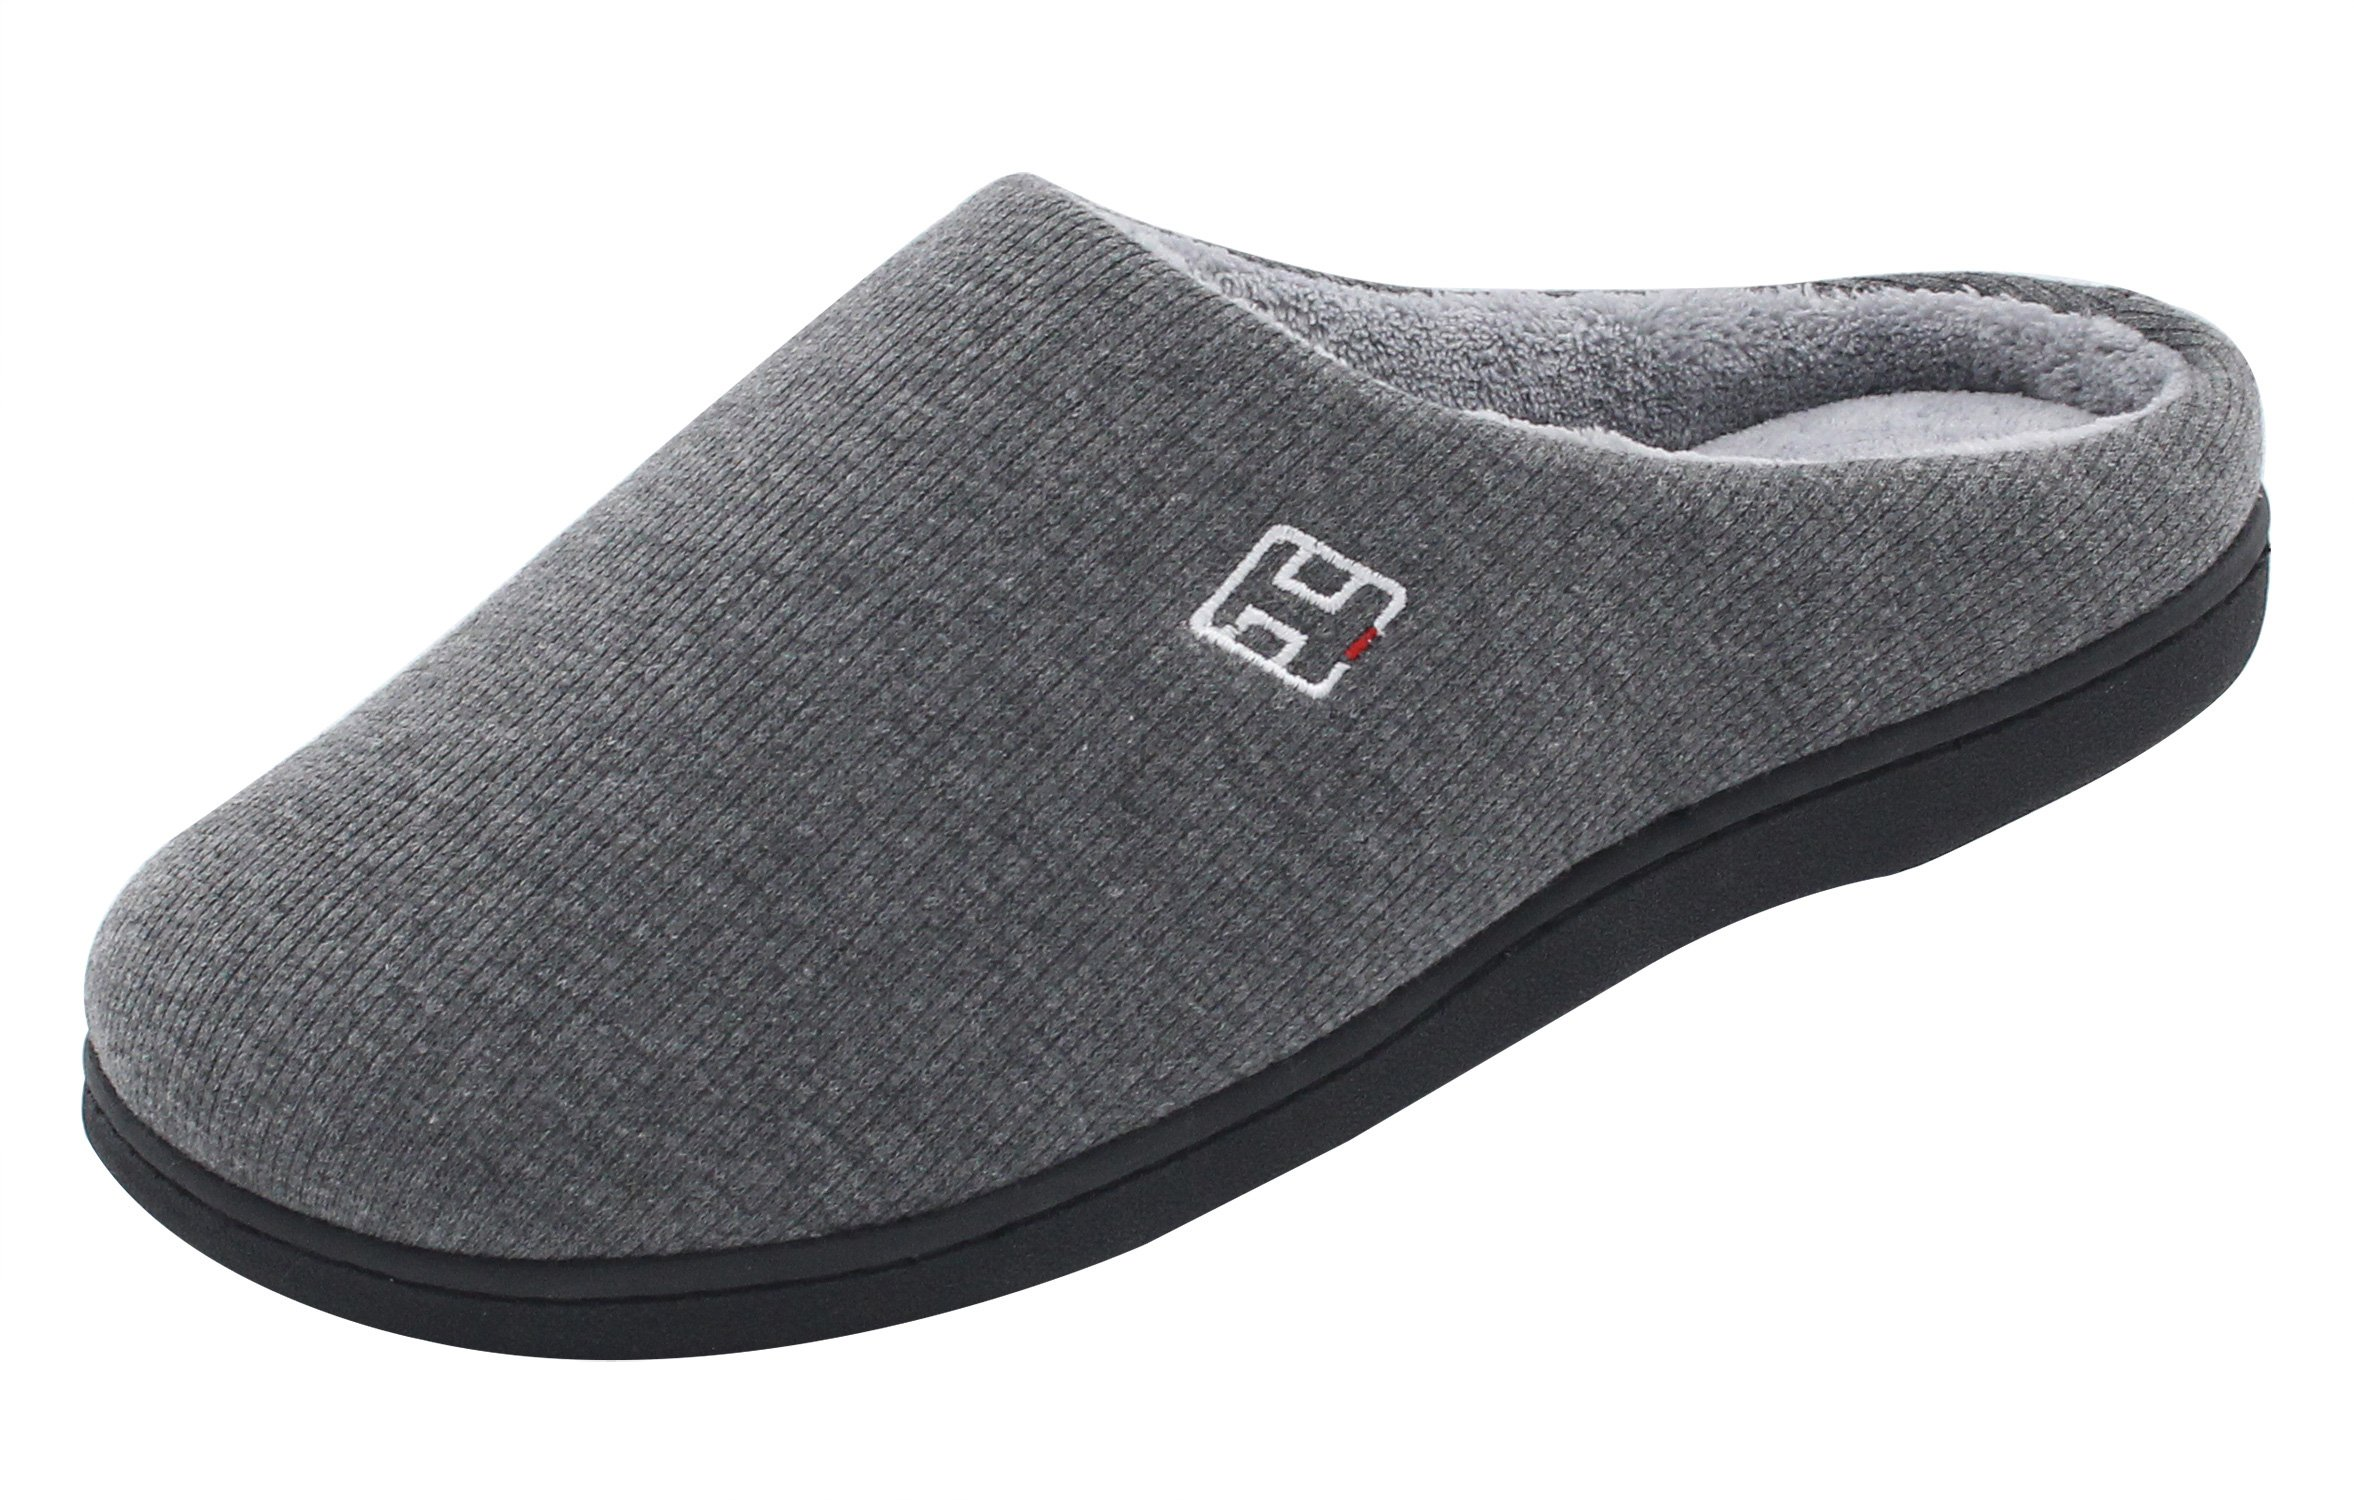 HomeIdeas Men's Cotton Memory Foam Anti-Slip Slip On House Slippers (Small/7-8 D(M) US, Gray) by HomeIdeas